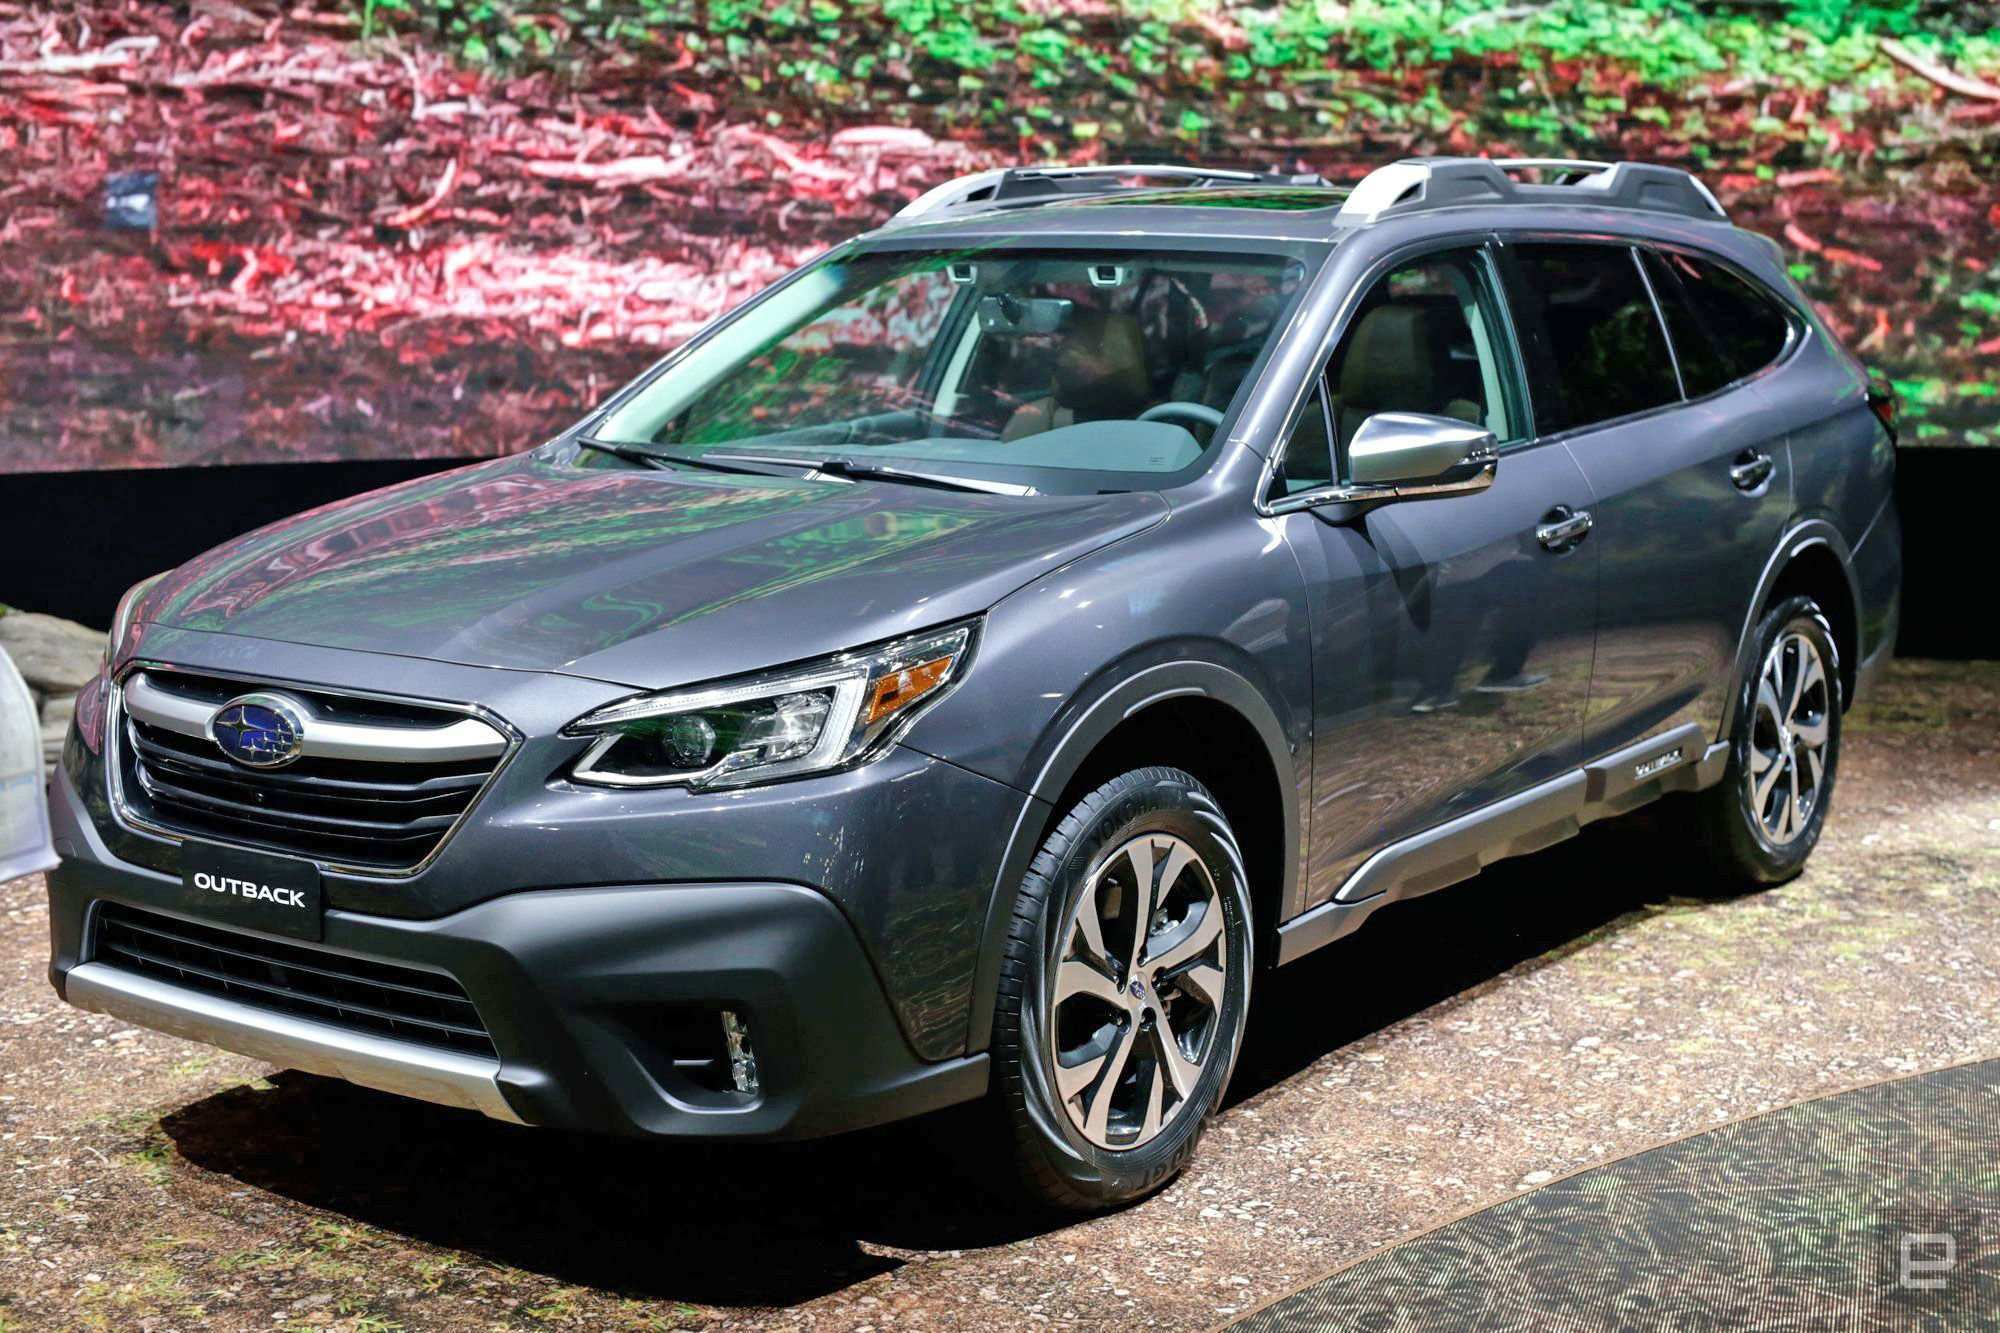 91 A Subaru Outback Update 2020 Engine